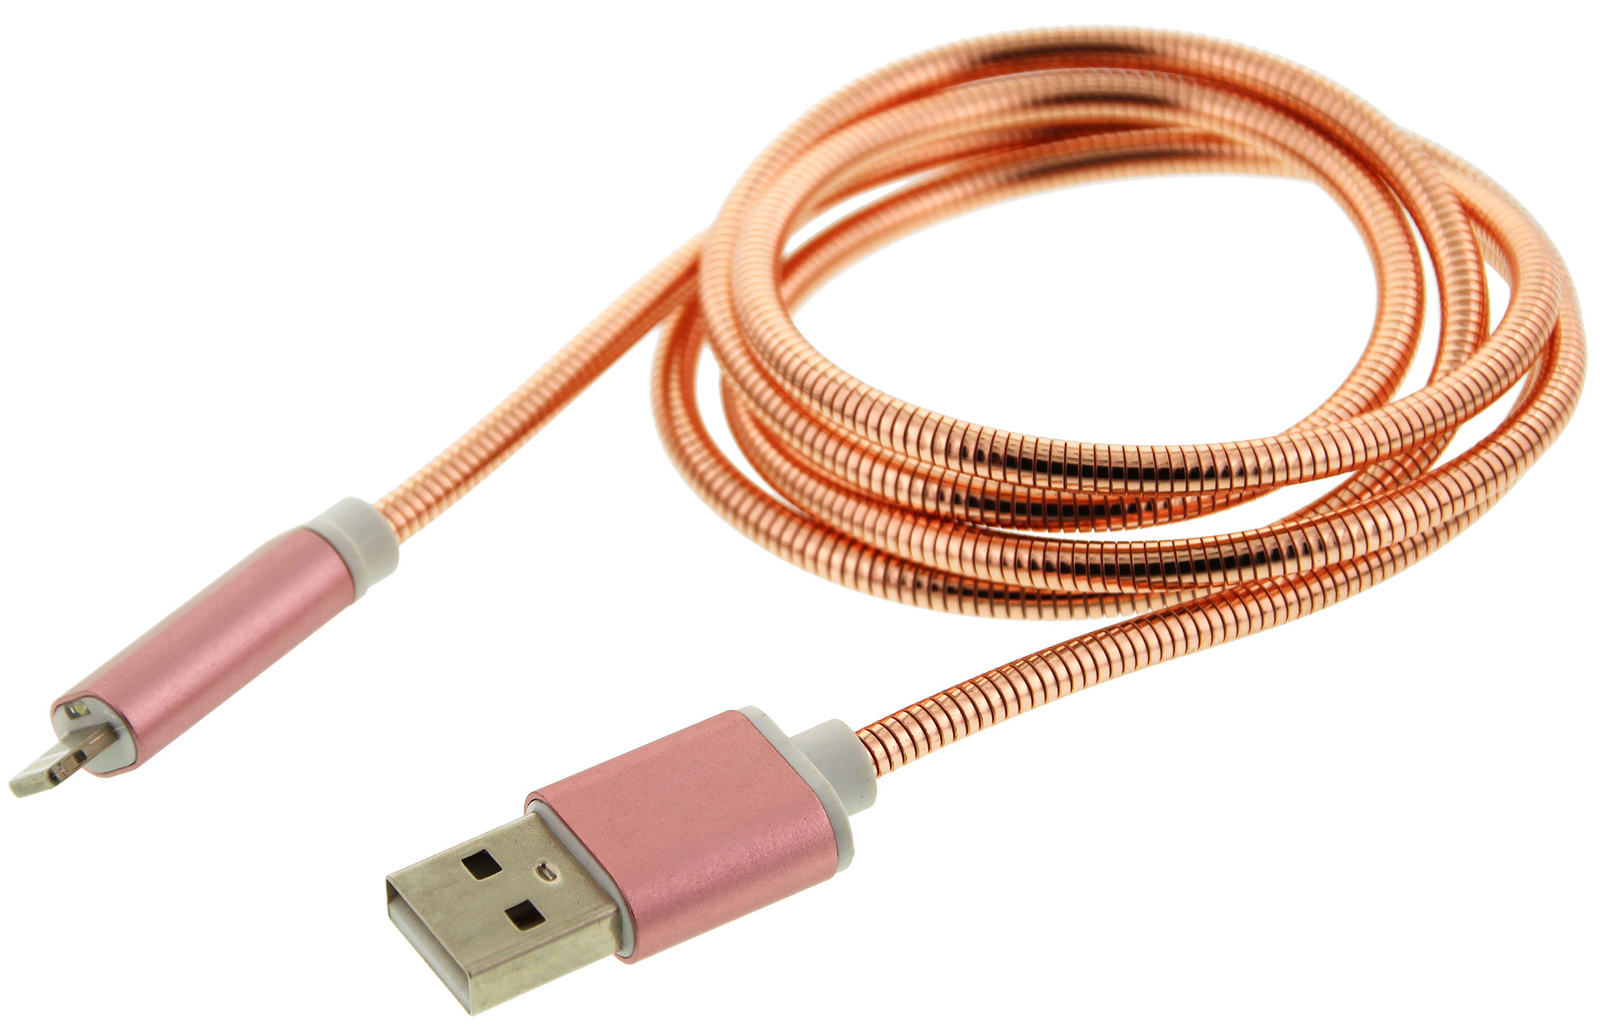 TouchLight Charge: 1m USB Charging Cable - 8PIN (Pink) image